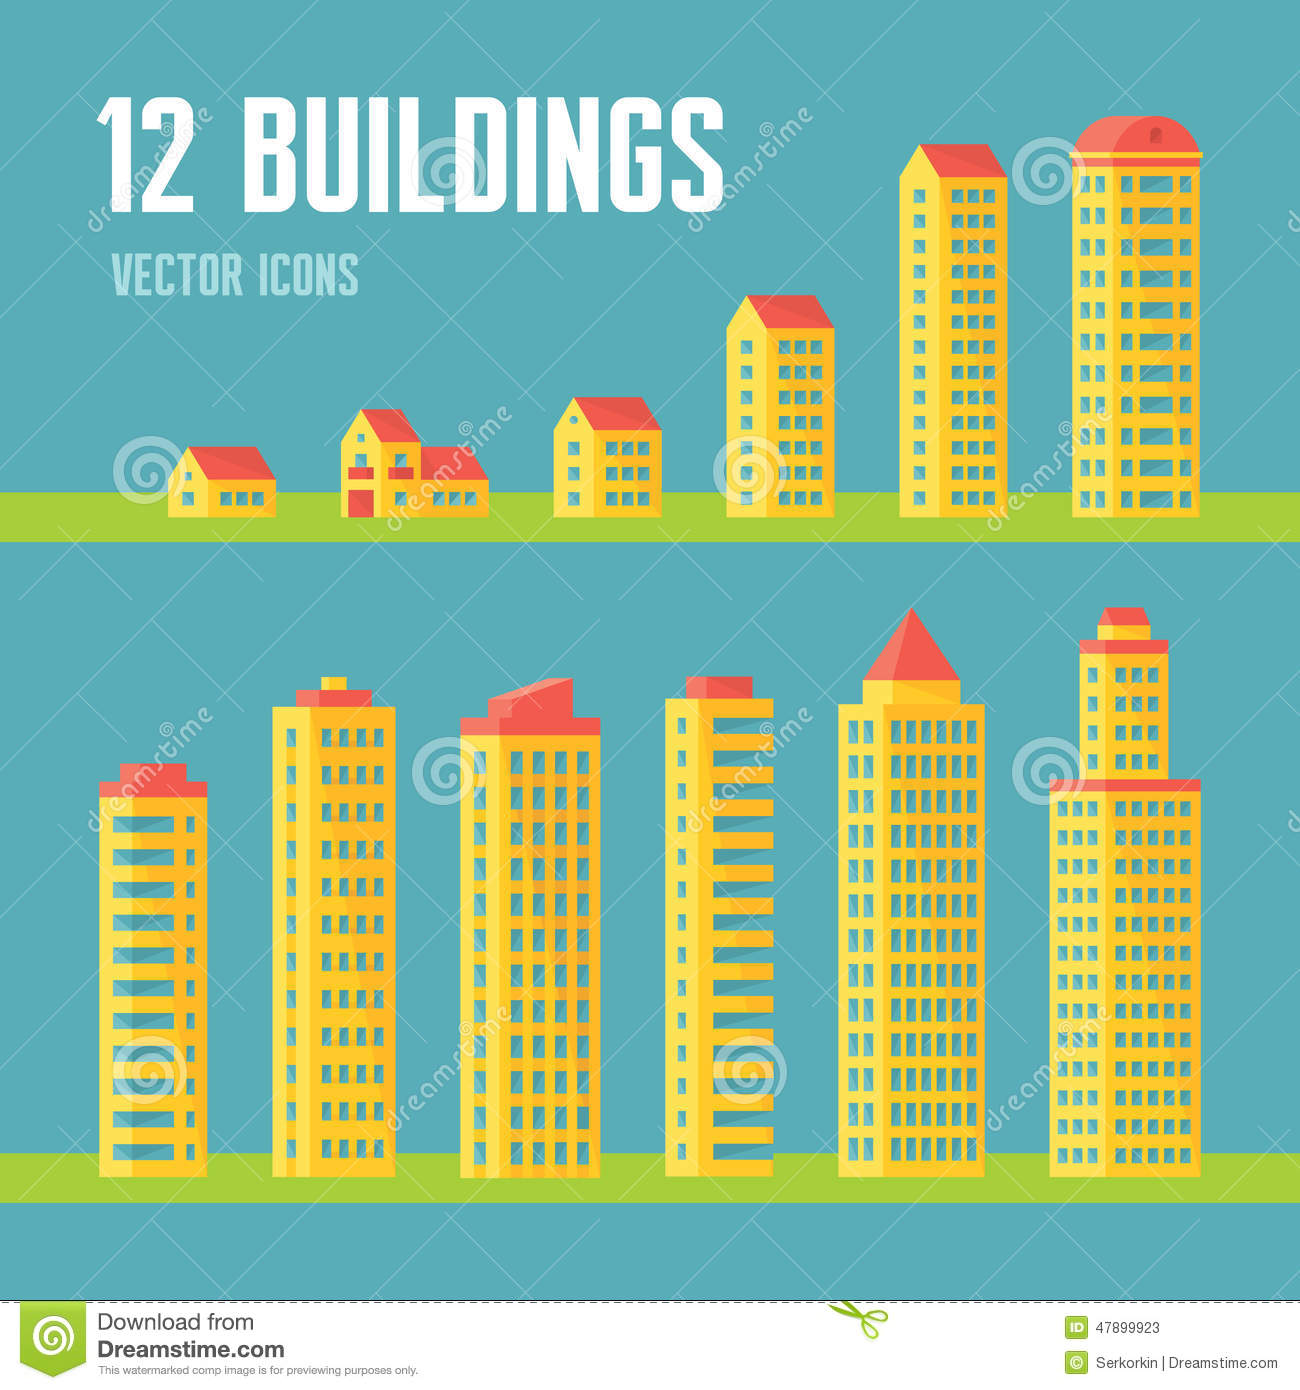 12 building vector icons in flat design style for for Flat architecture design